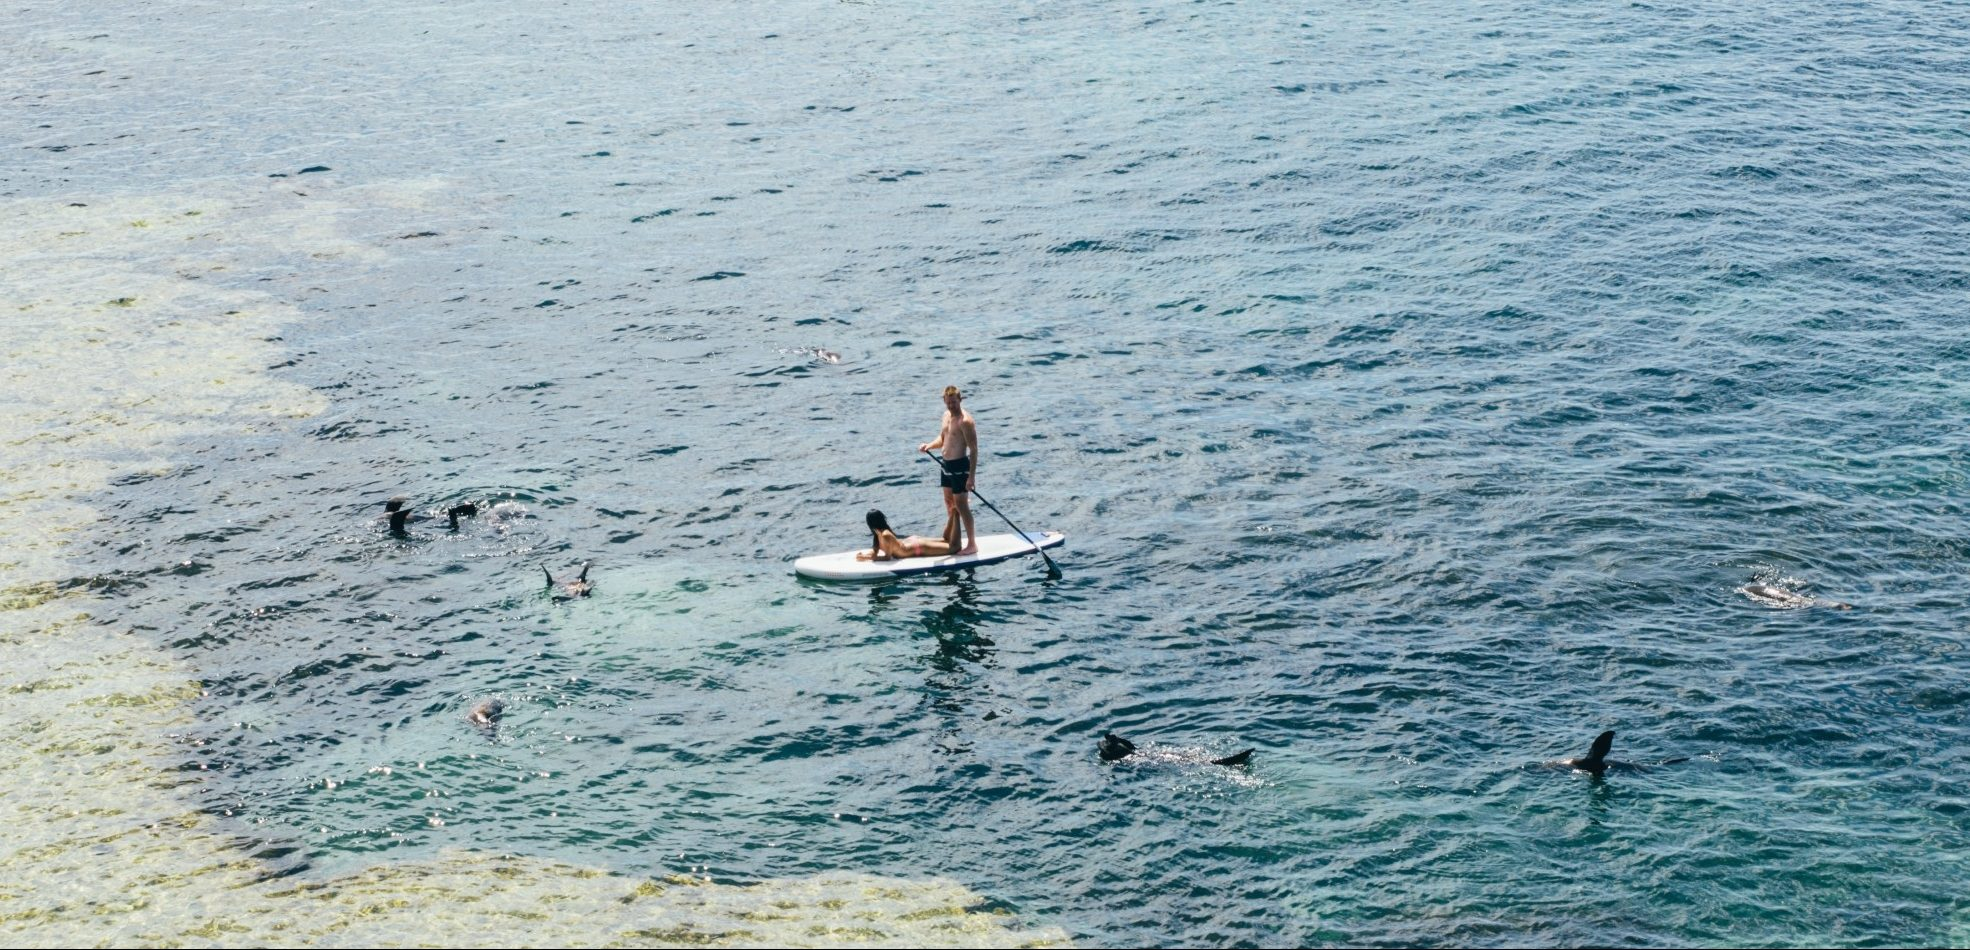 The Stand-Up Paddleboard Beginner's Guide: How to SUP Like a Pro